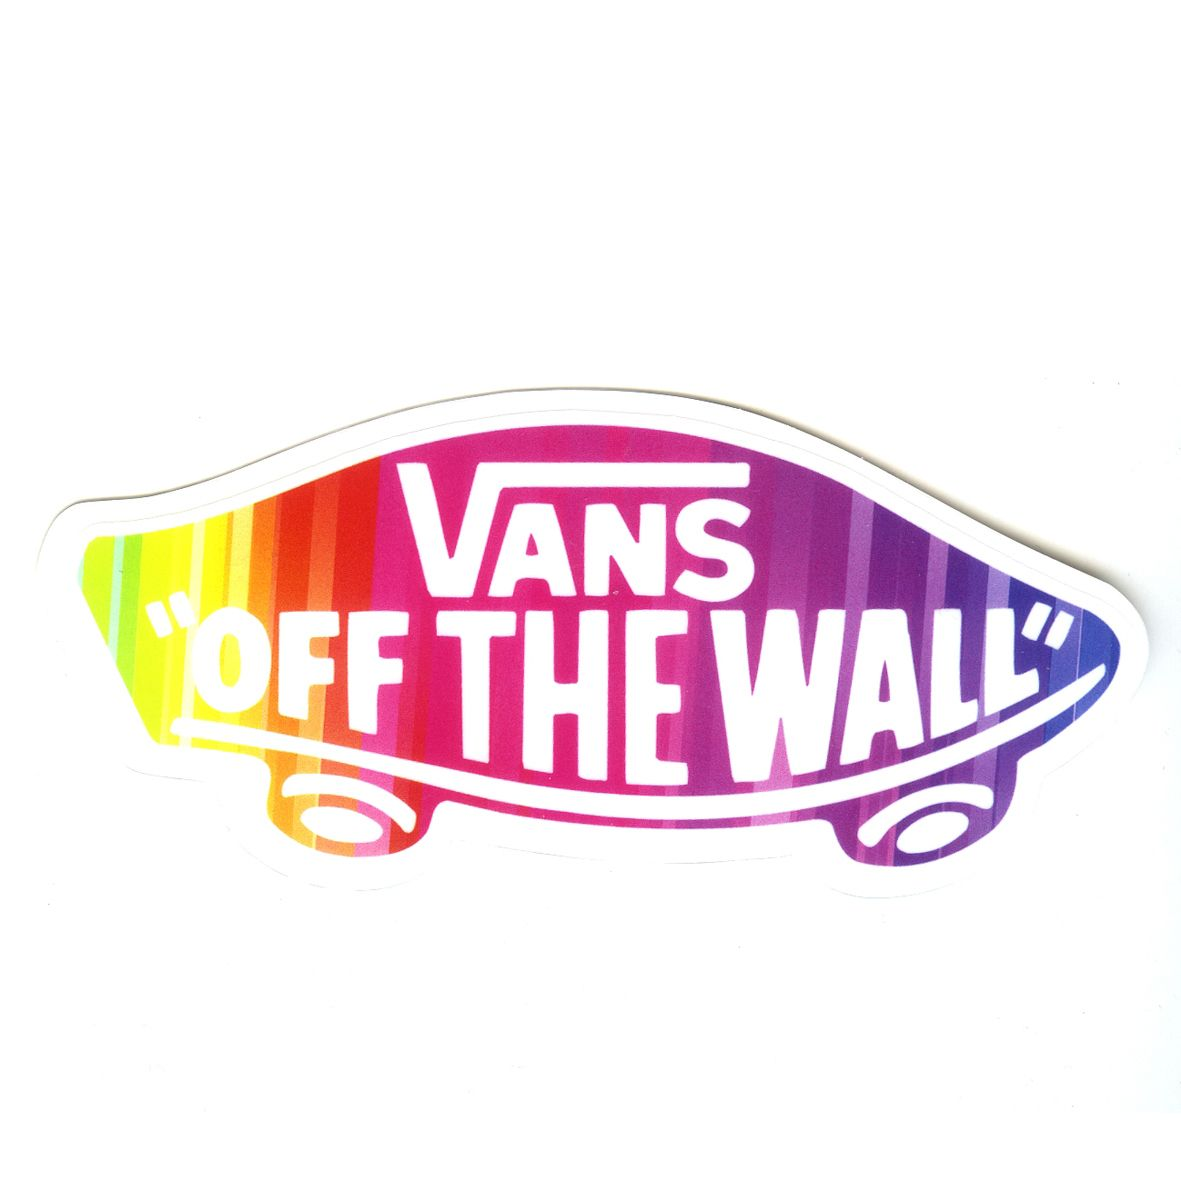 1311 vans off the wall logo width 9 cm decal sticker on wall logo decal id=16145